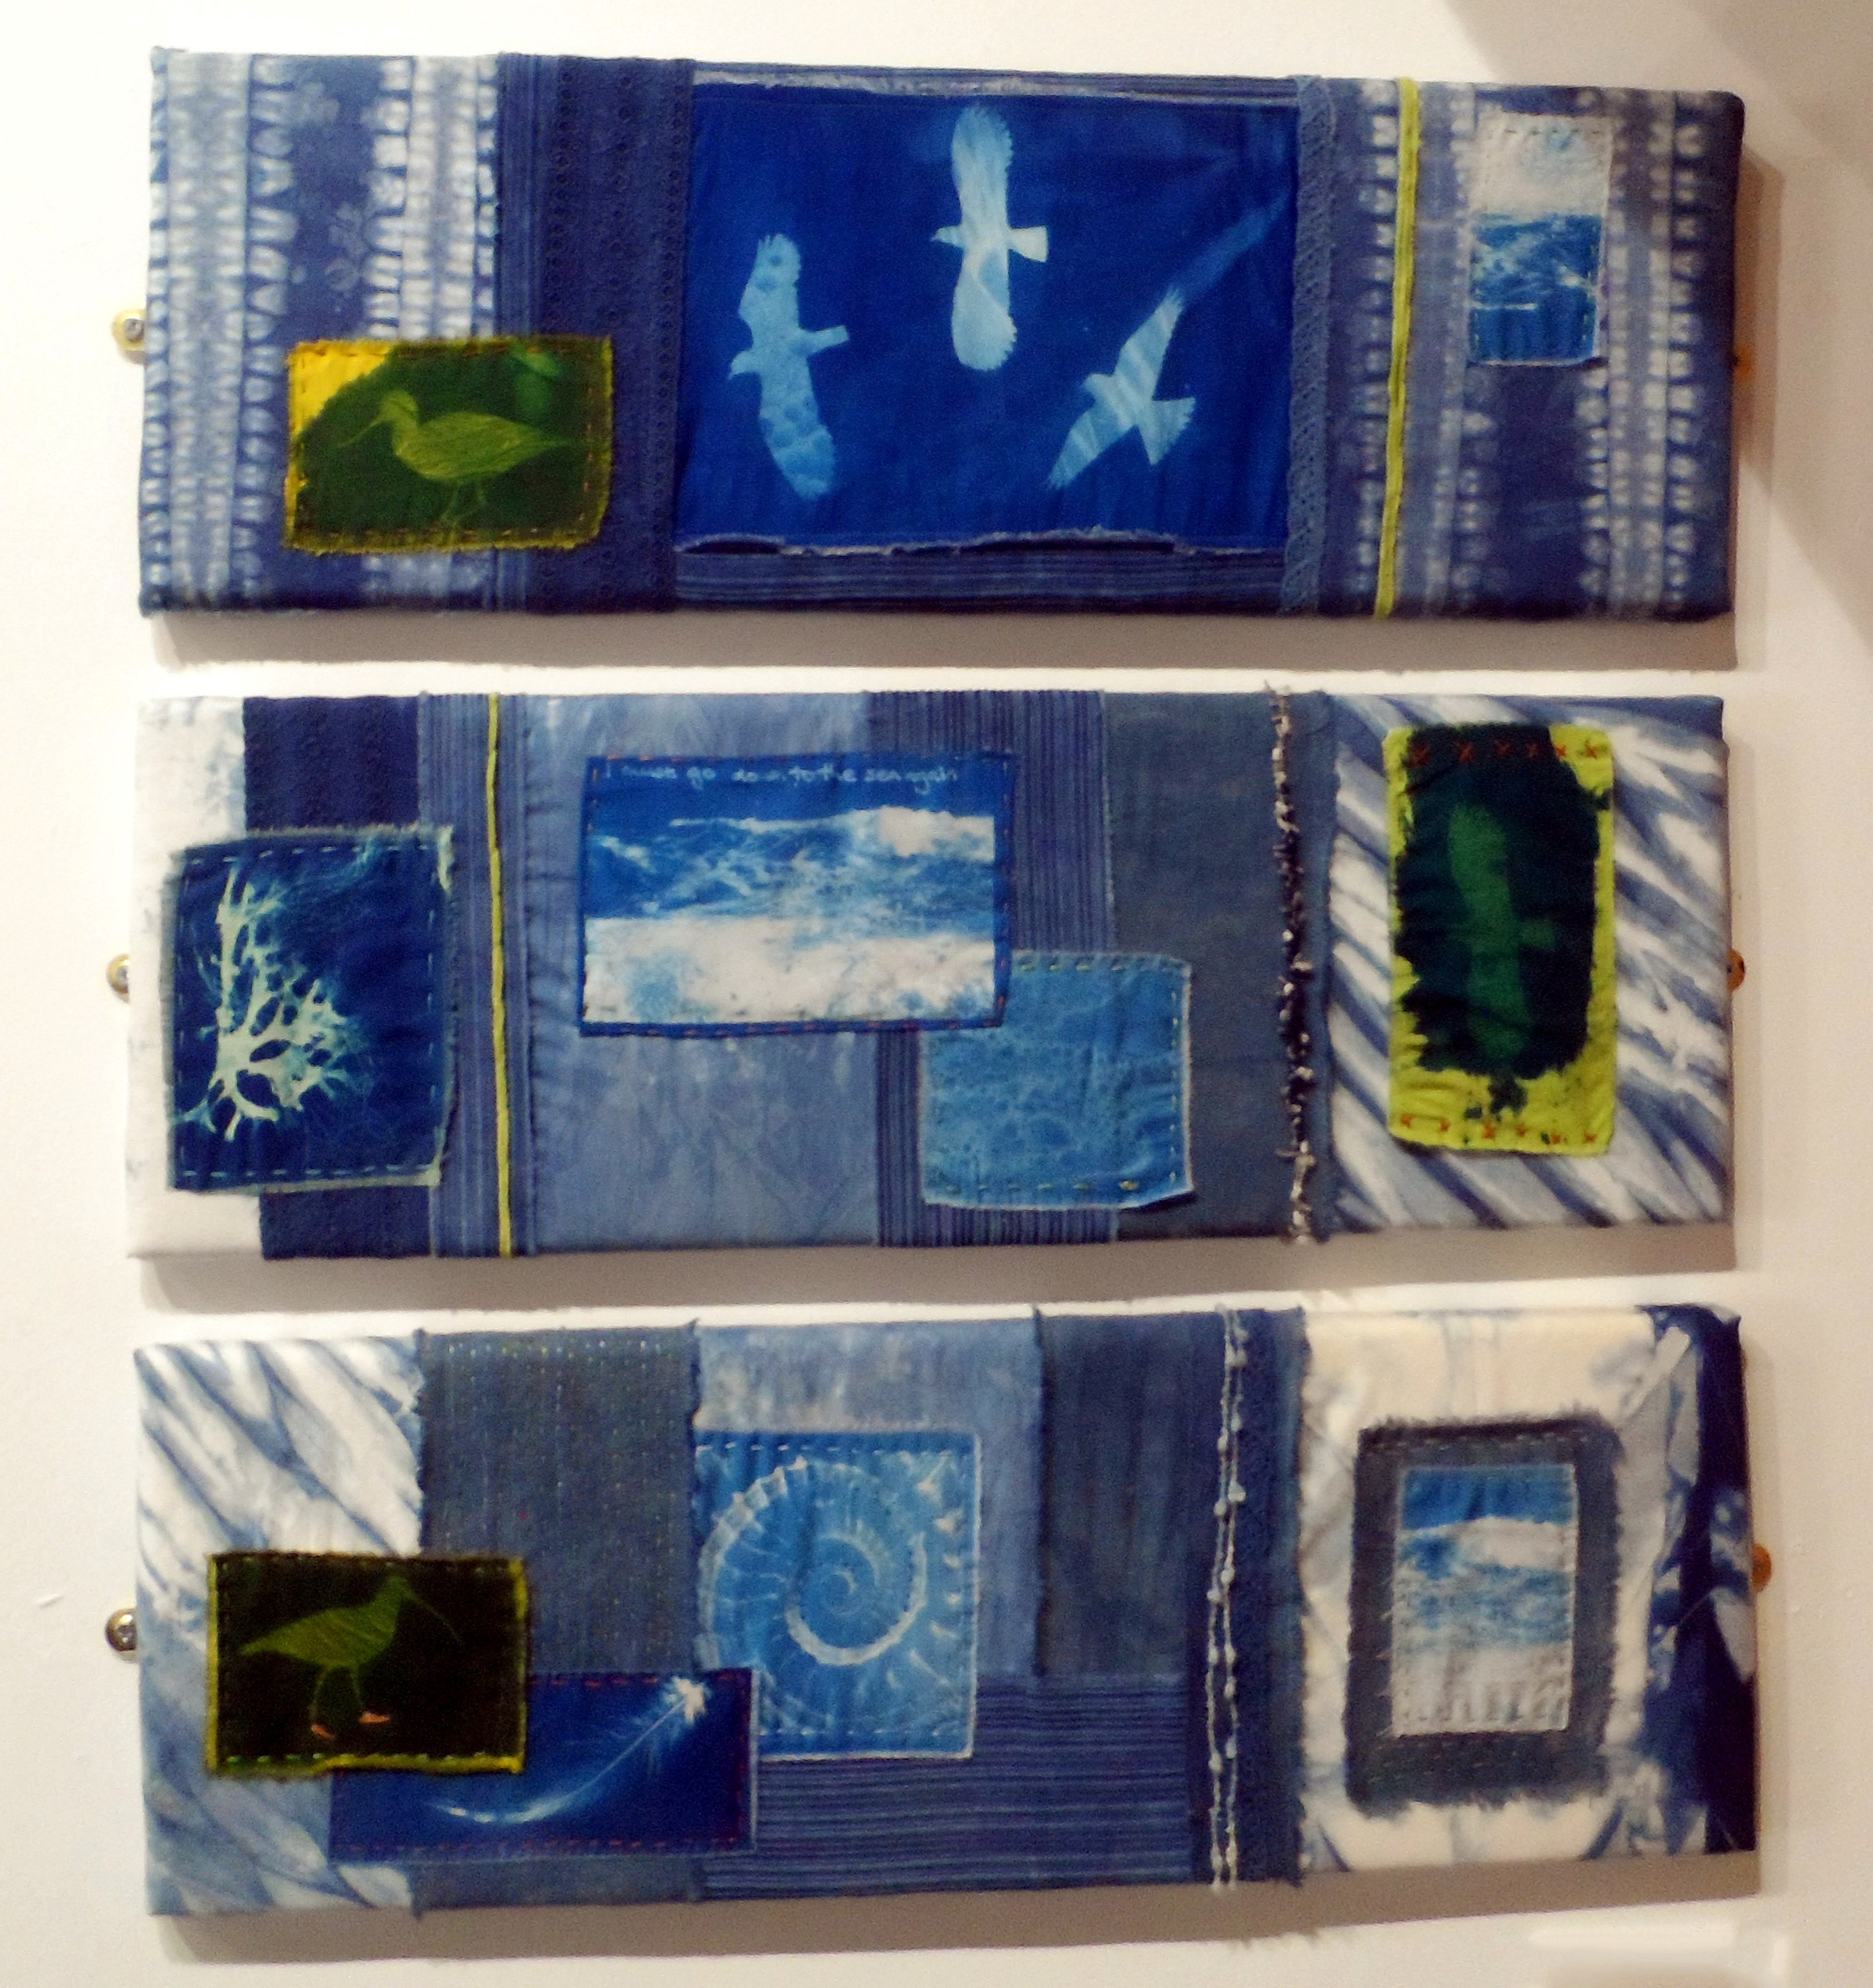 ALL THAT IS BLUE (TRIPTYCH) by Rosey Paul, indigo dye & cyanotype collage, Re-View Textile Group, Frodsham 2019